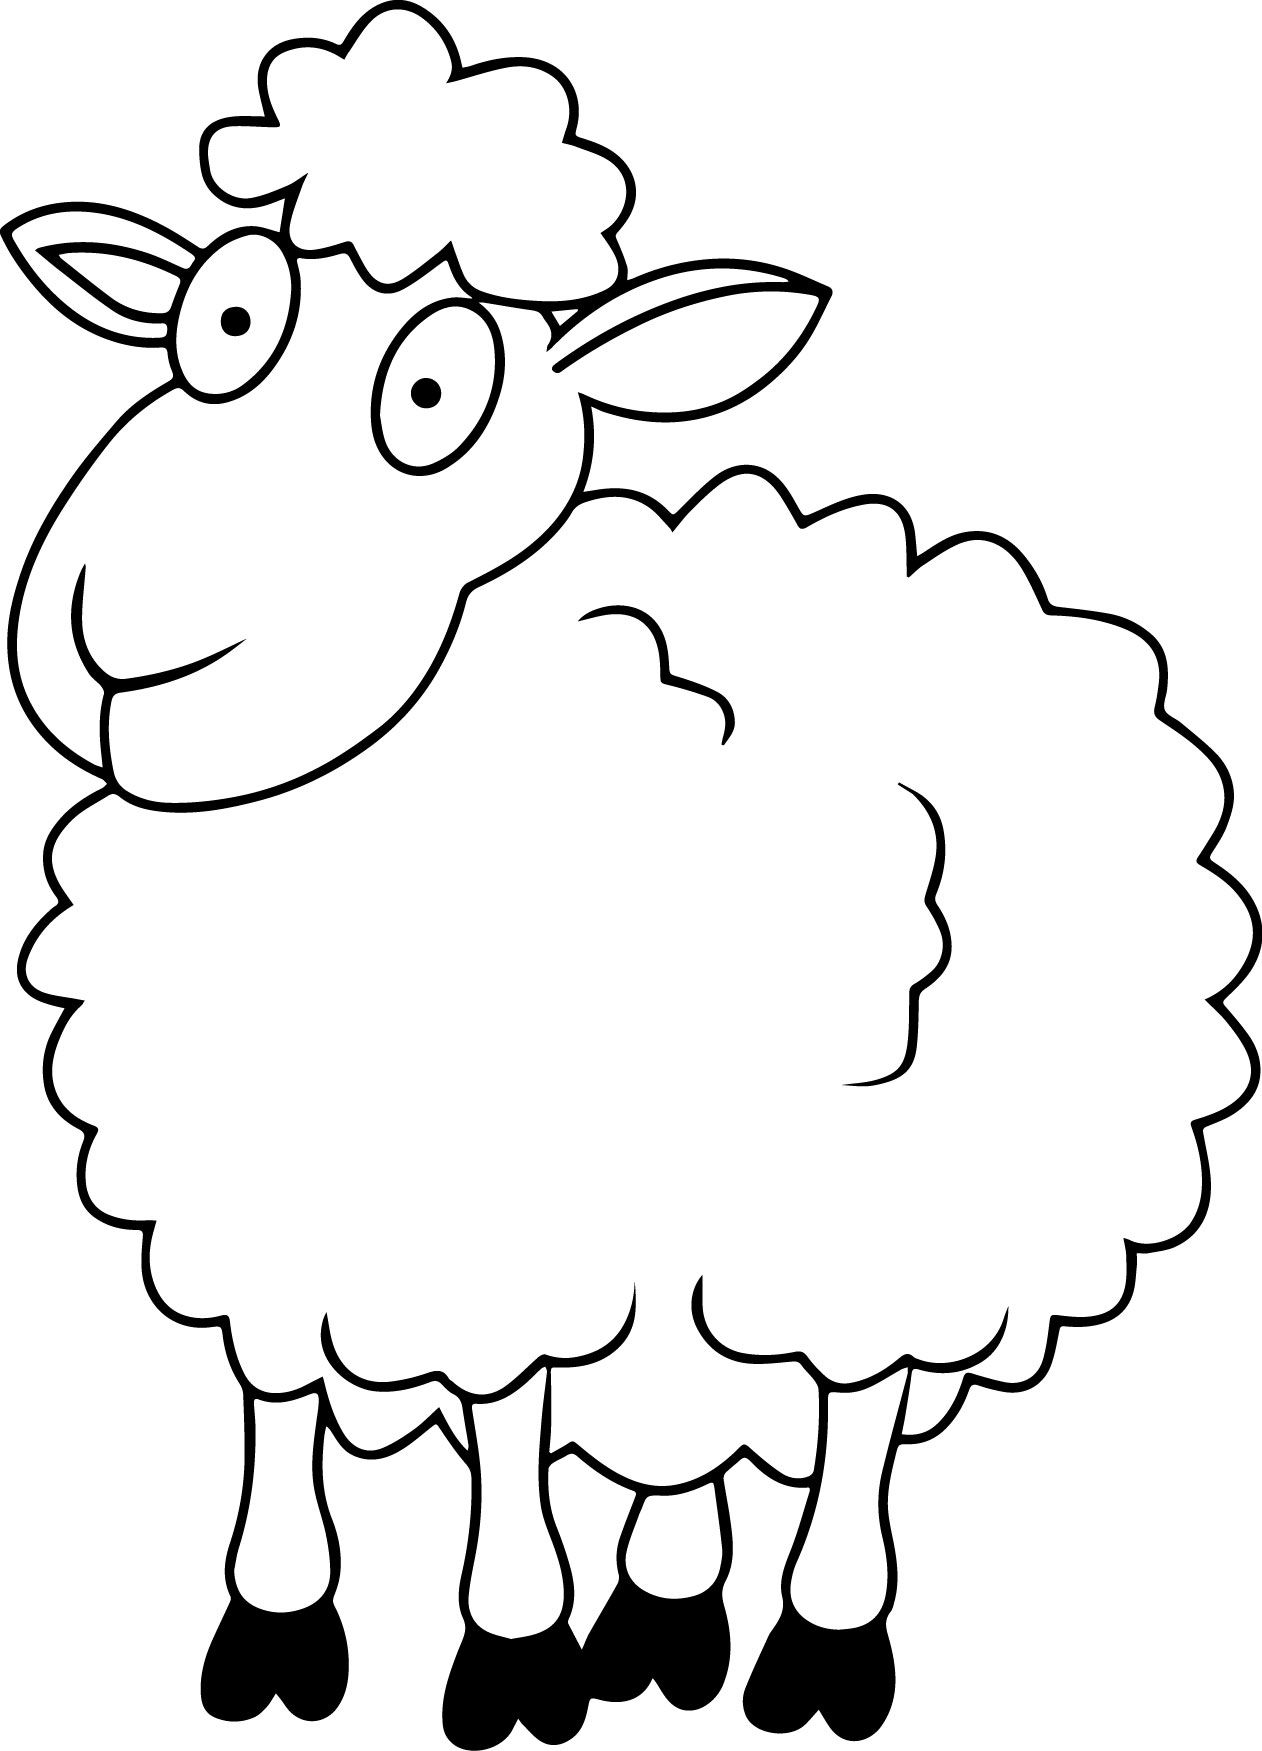 lamb coloring page sheep outline coloring page coloring home lamb coloring page